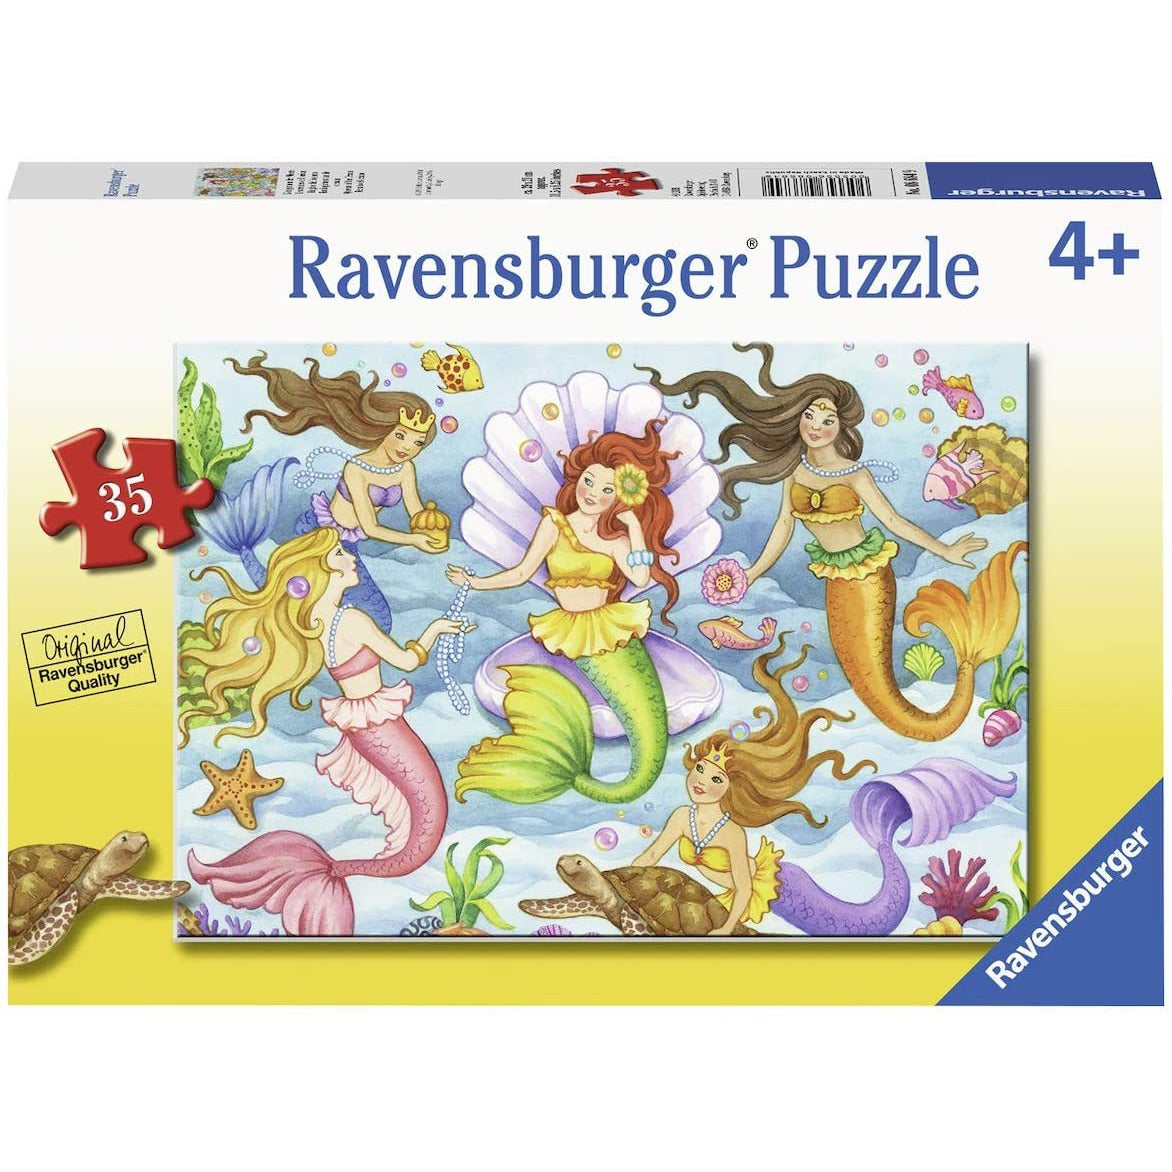 Ravensburger 35 Piece Puzzle Queens of the Ocean mermaids 08684 canada ontario